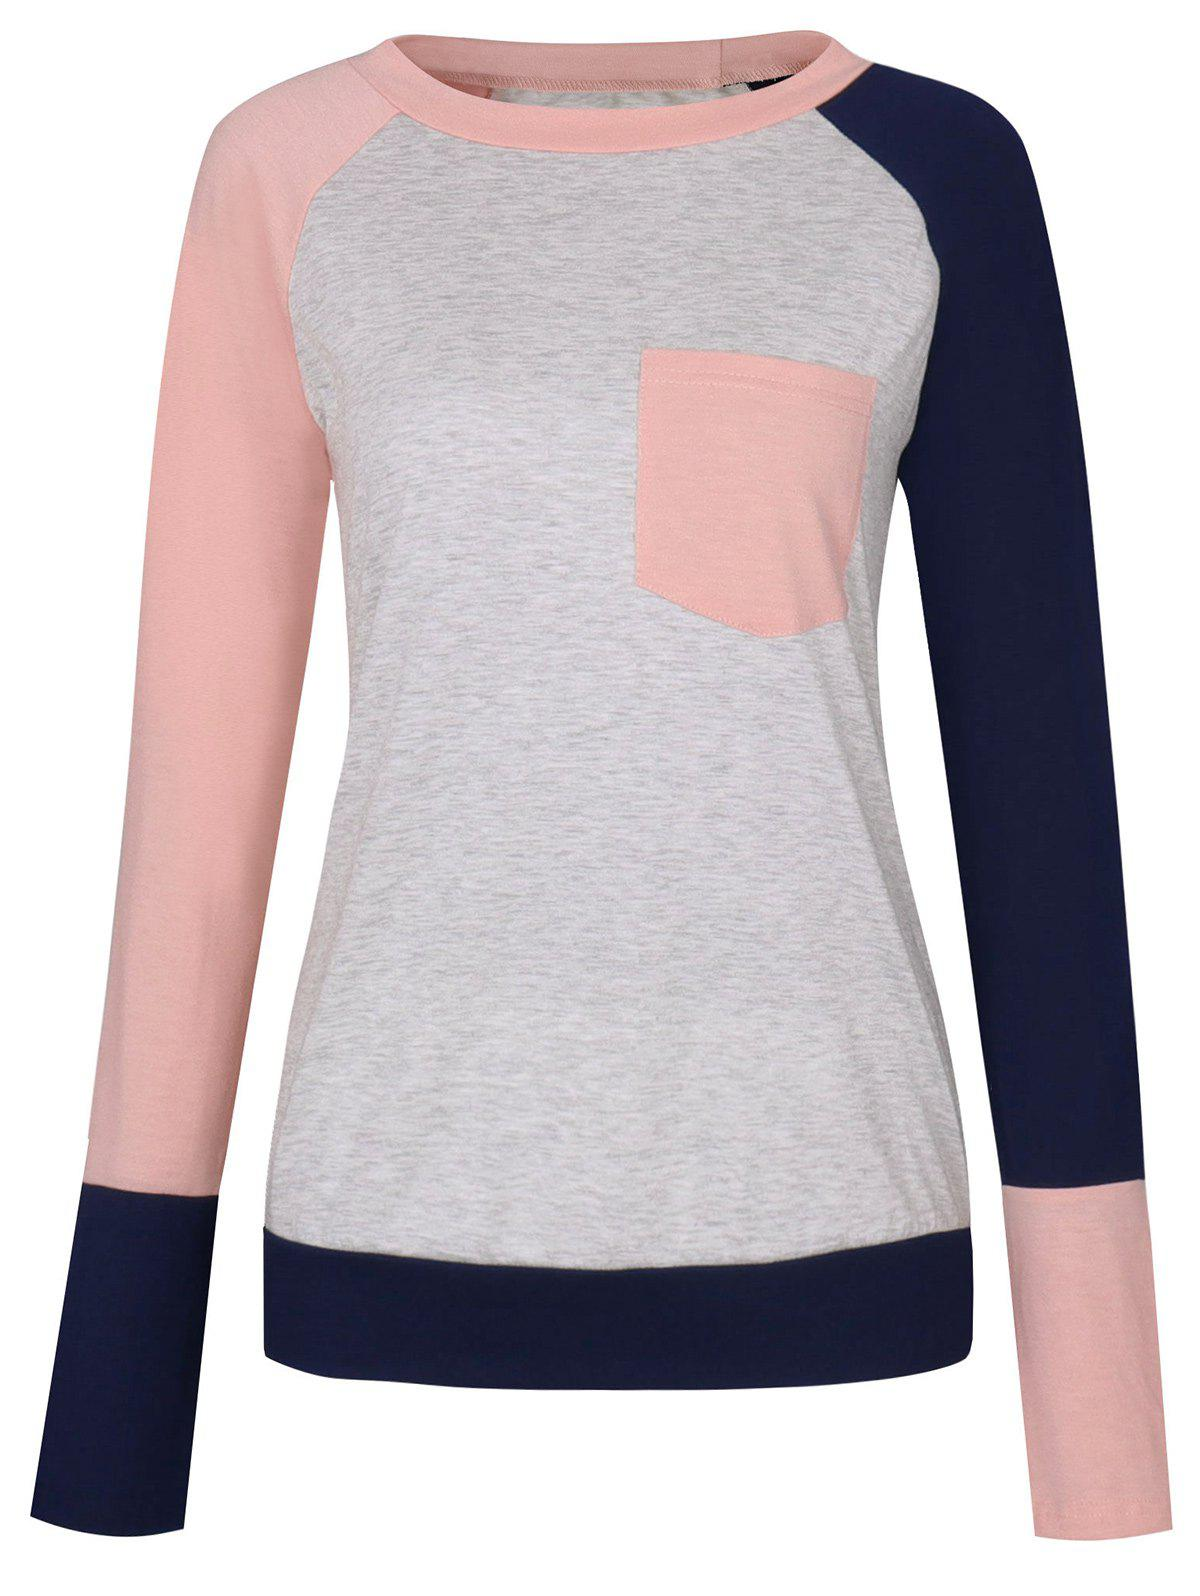 Color Block Raglan Sleeve Pocket T-shirt - PINK L